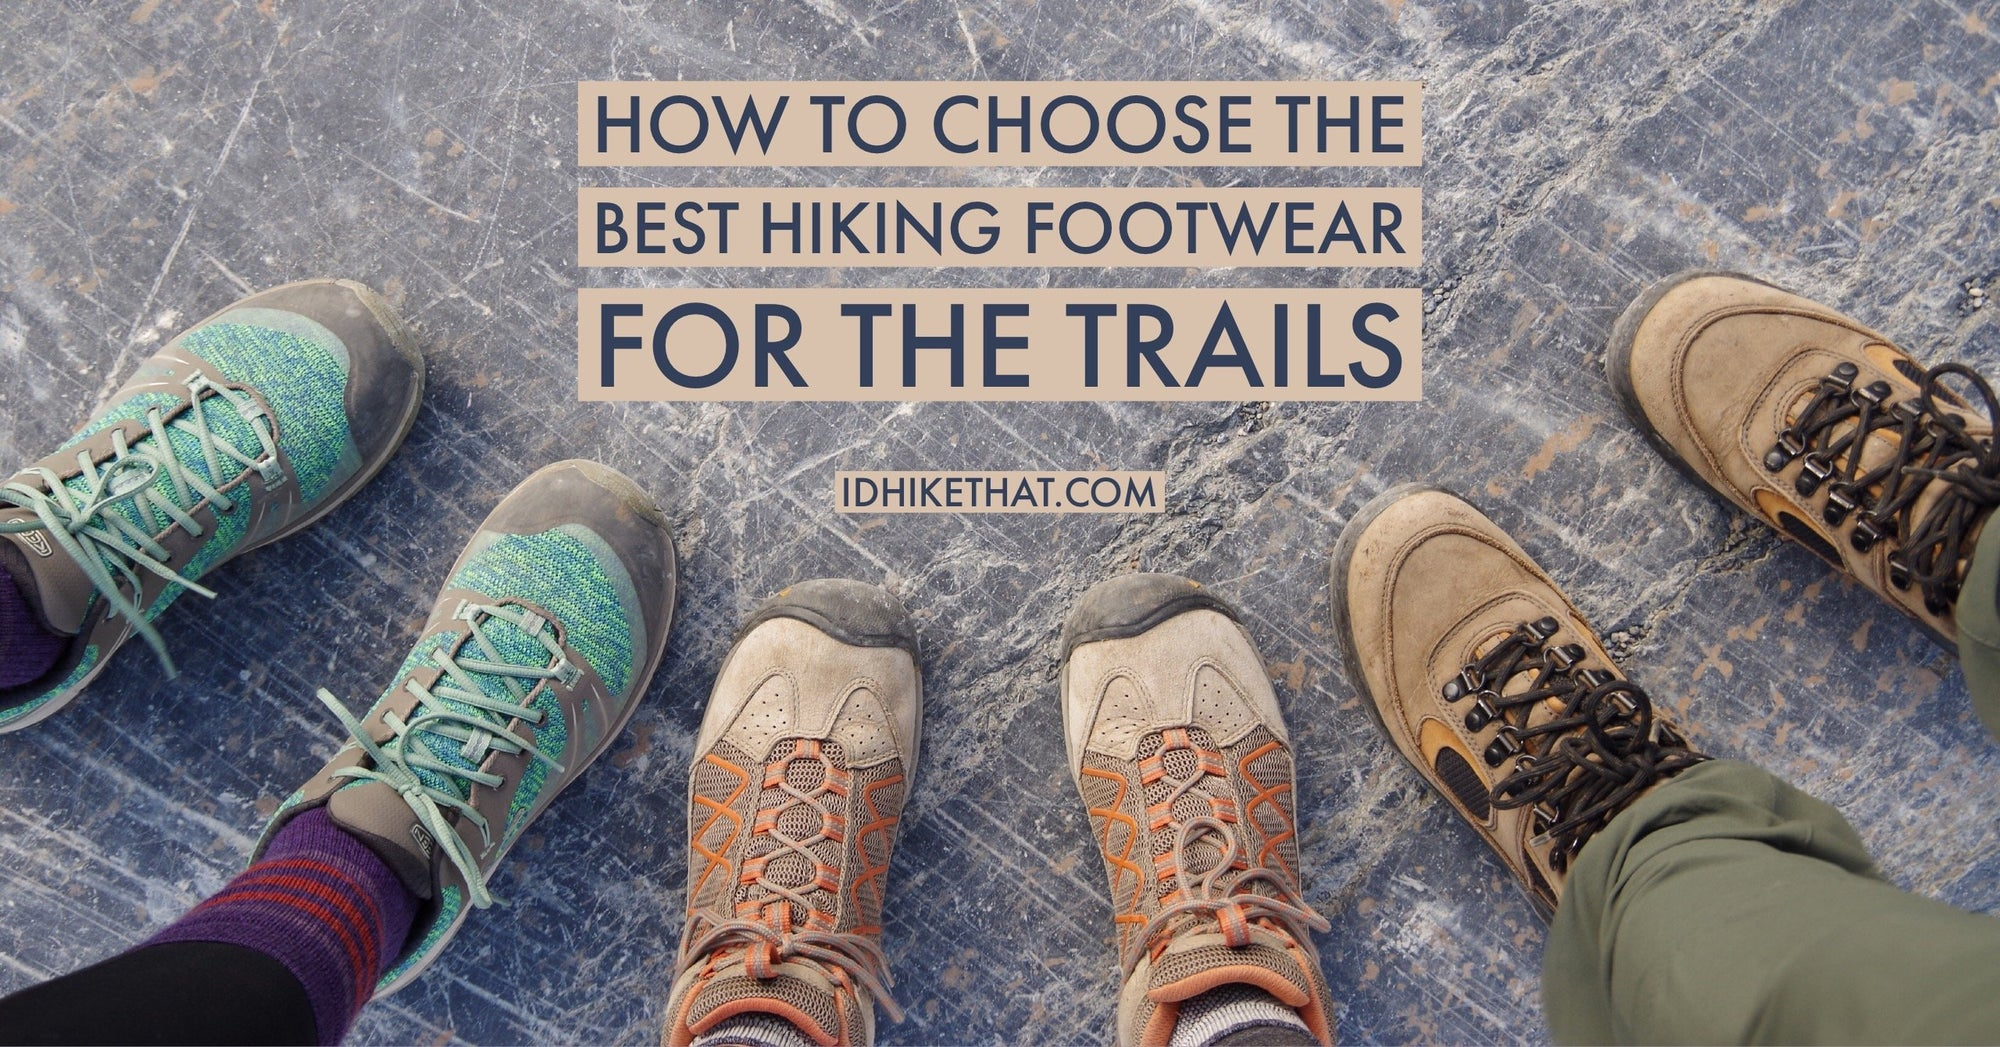 How to Choose the best hiking footwear for the trails. Visit idhikethat.com to learn more.